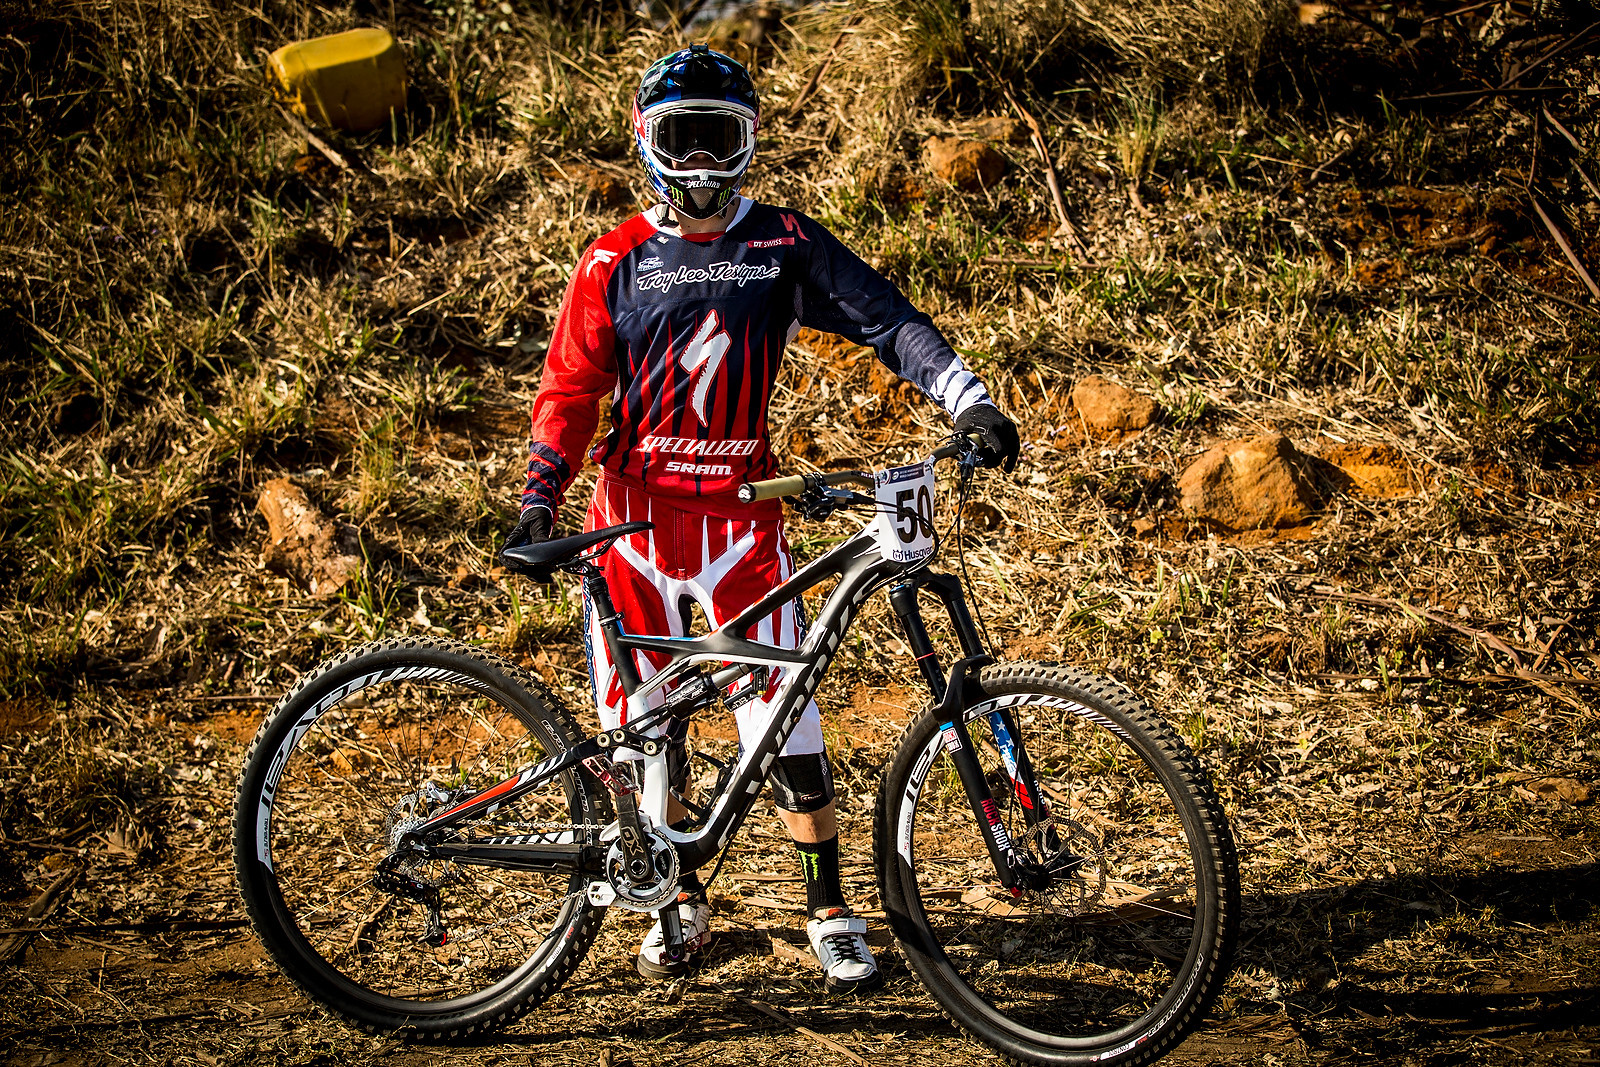 Mitch Ropelato Running a Specialized S-Works Enduro 29 at World Champs - World Championships Bikes and Gear 2013 - Mountain Biking Pictures - Vital MTB